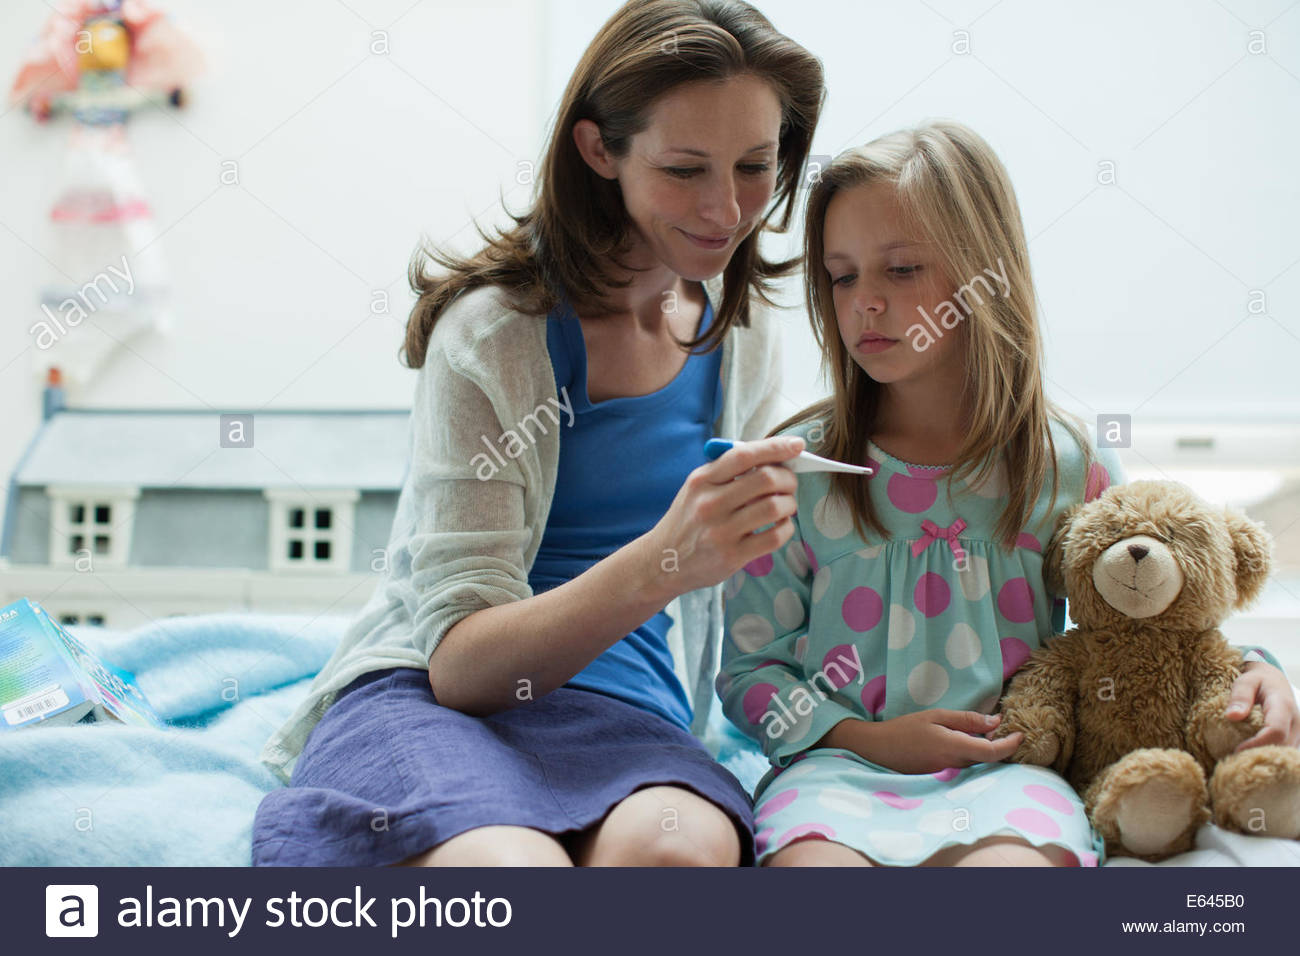 Mother checking daughterÂ's temperature with digital thermometer - Stock Image